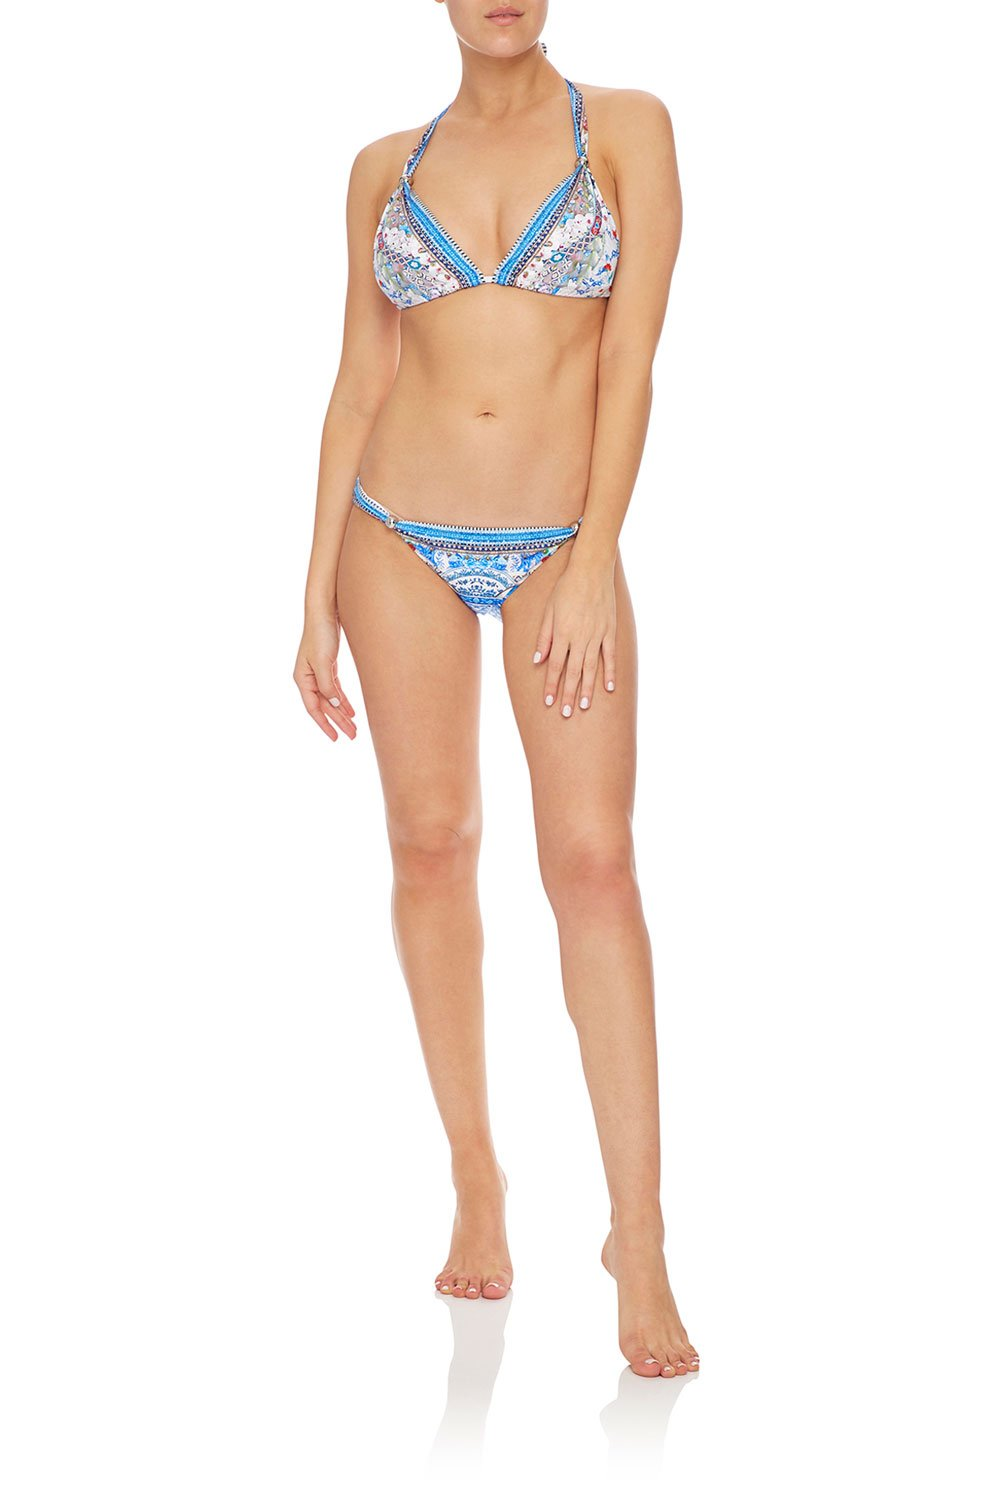 CAMILLA HALTER SLIDE TRI W/ TRIM GEISHA GATEWAYS